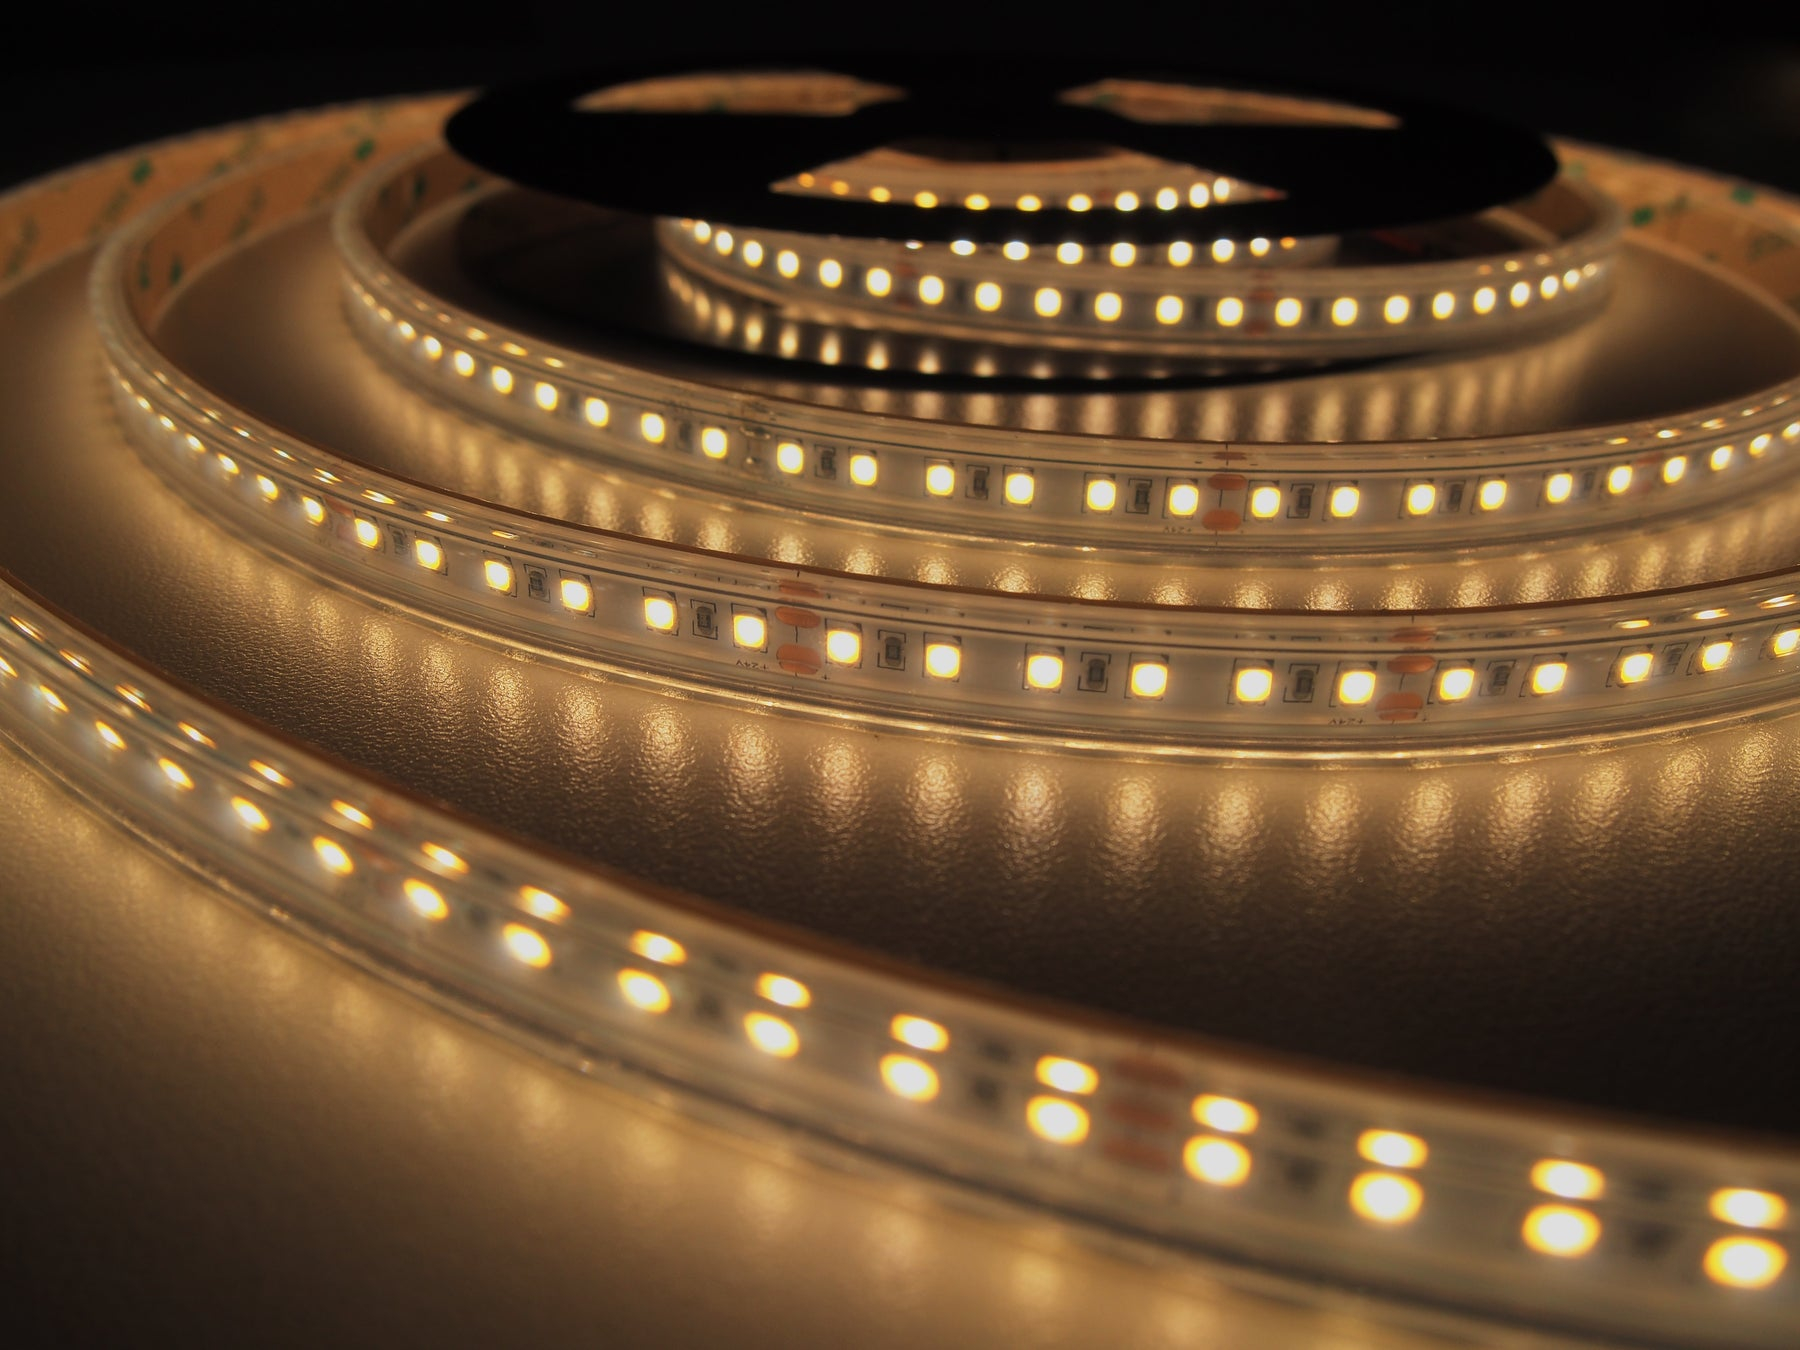 YUJILEDS® High CRI 95+ IP65/IP67 Waterproof LED Flexible Strip